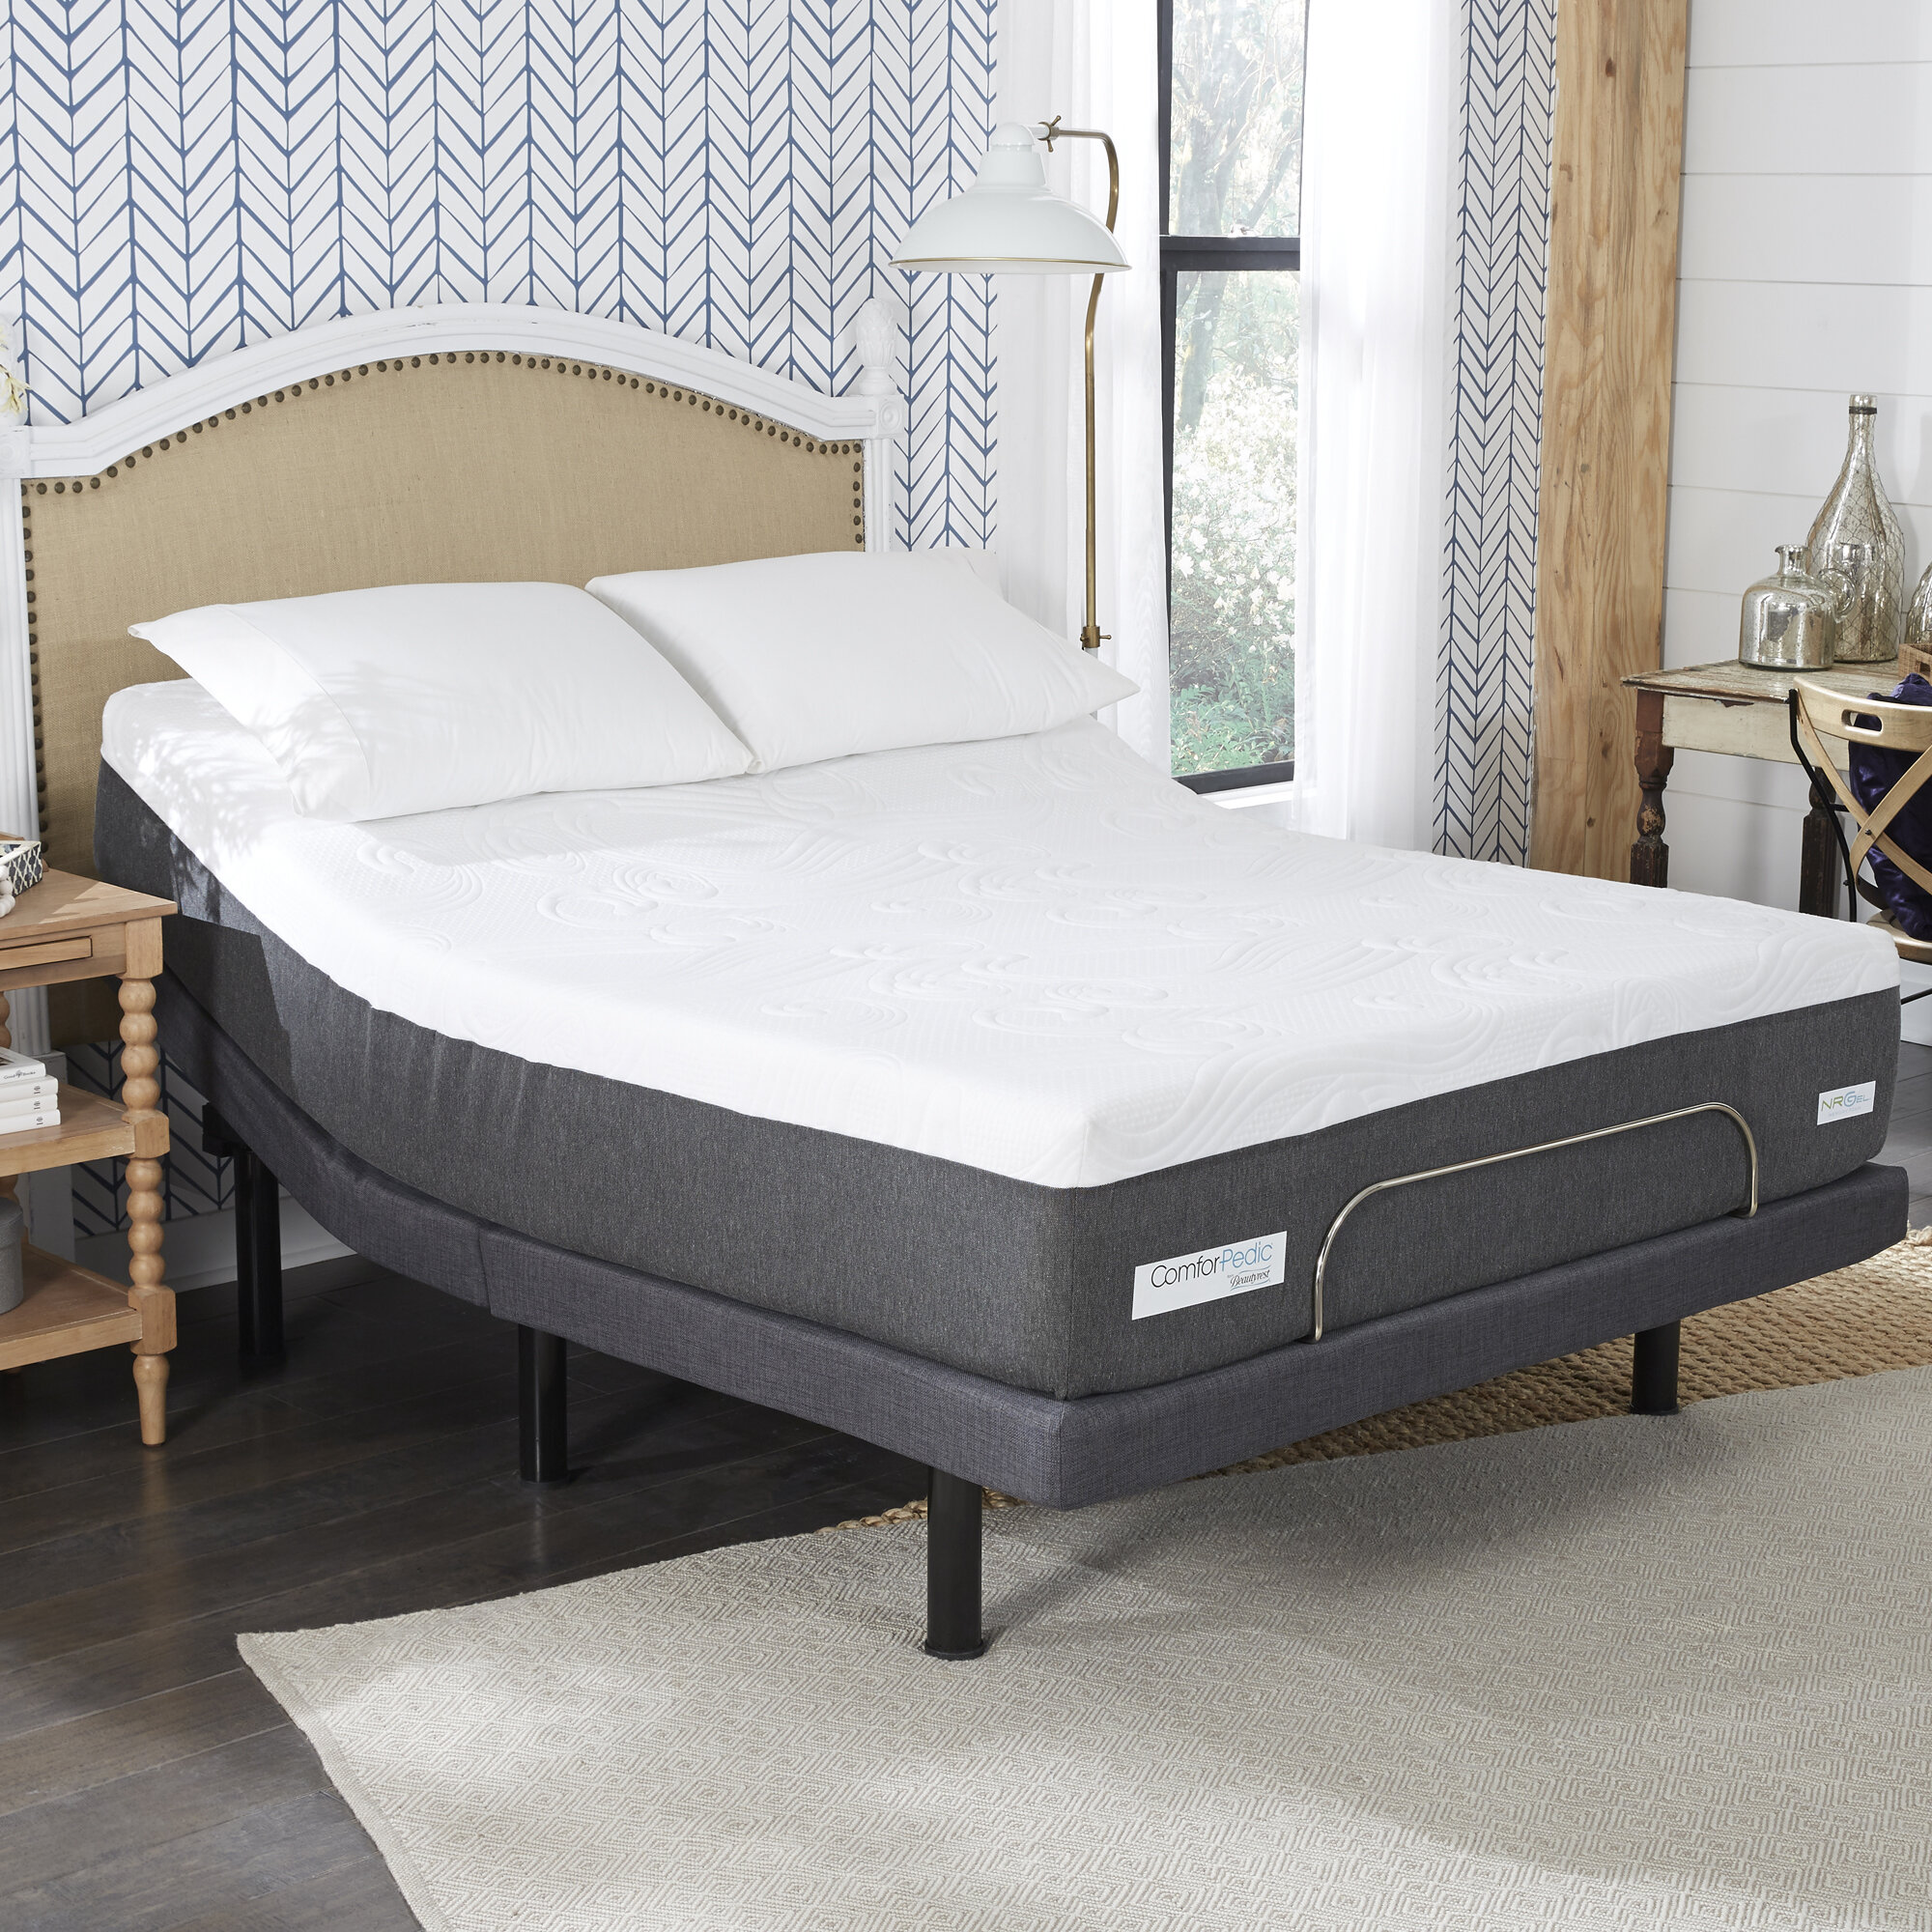 Comforpedic Loft From Beautyrest 14 Medium Gel Memory Foam